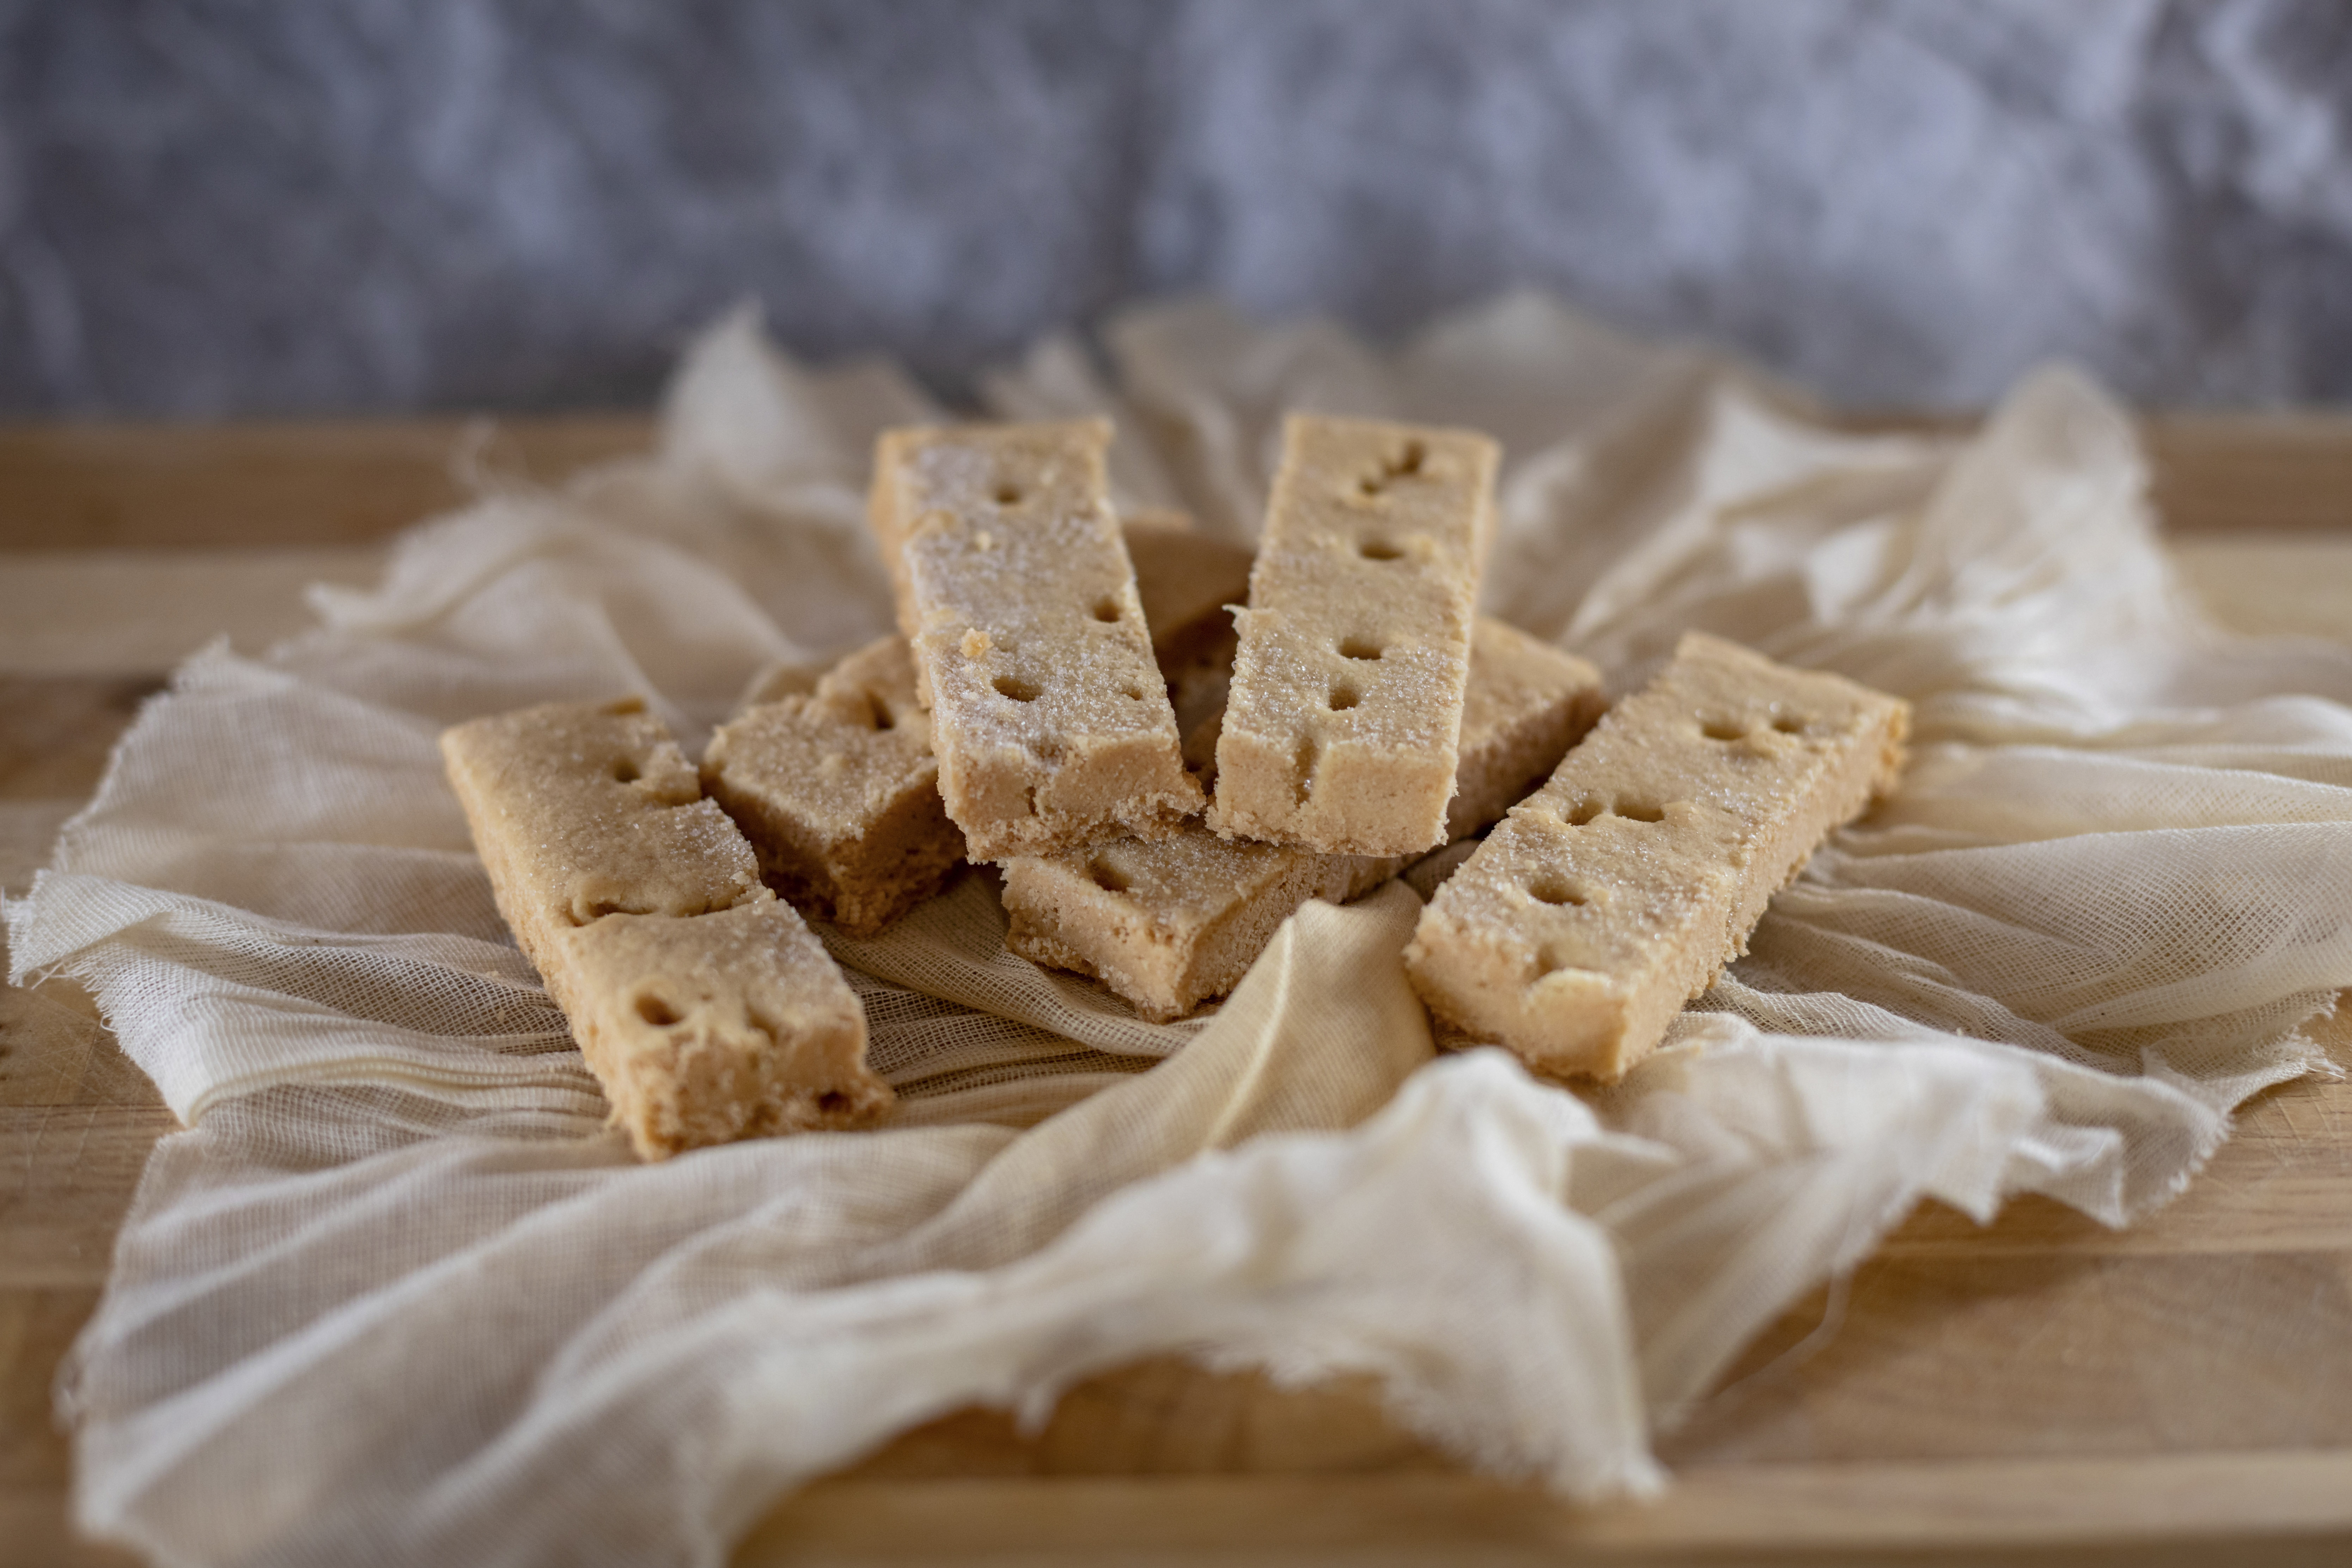 Shortbread against a rustic background